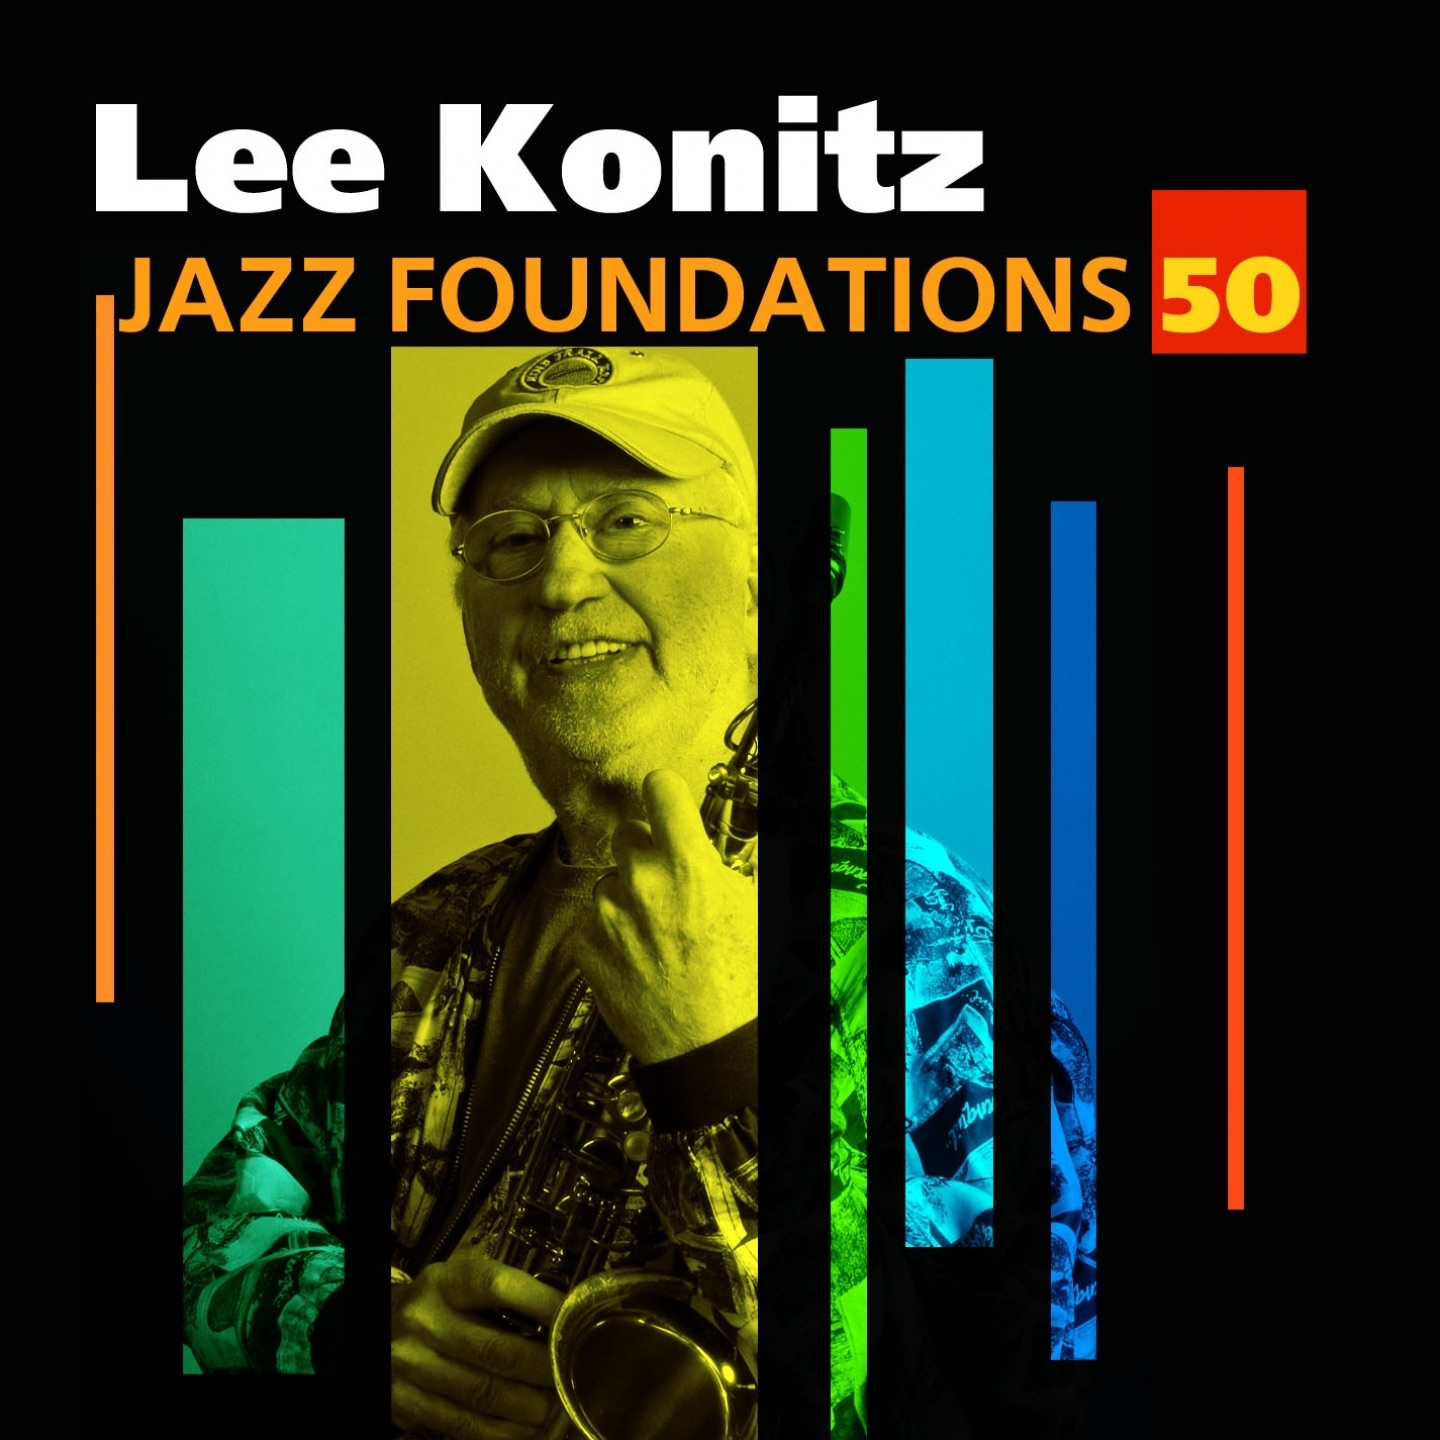 Jazz Foundations, Vol. 50: Lee Konitz